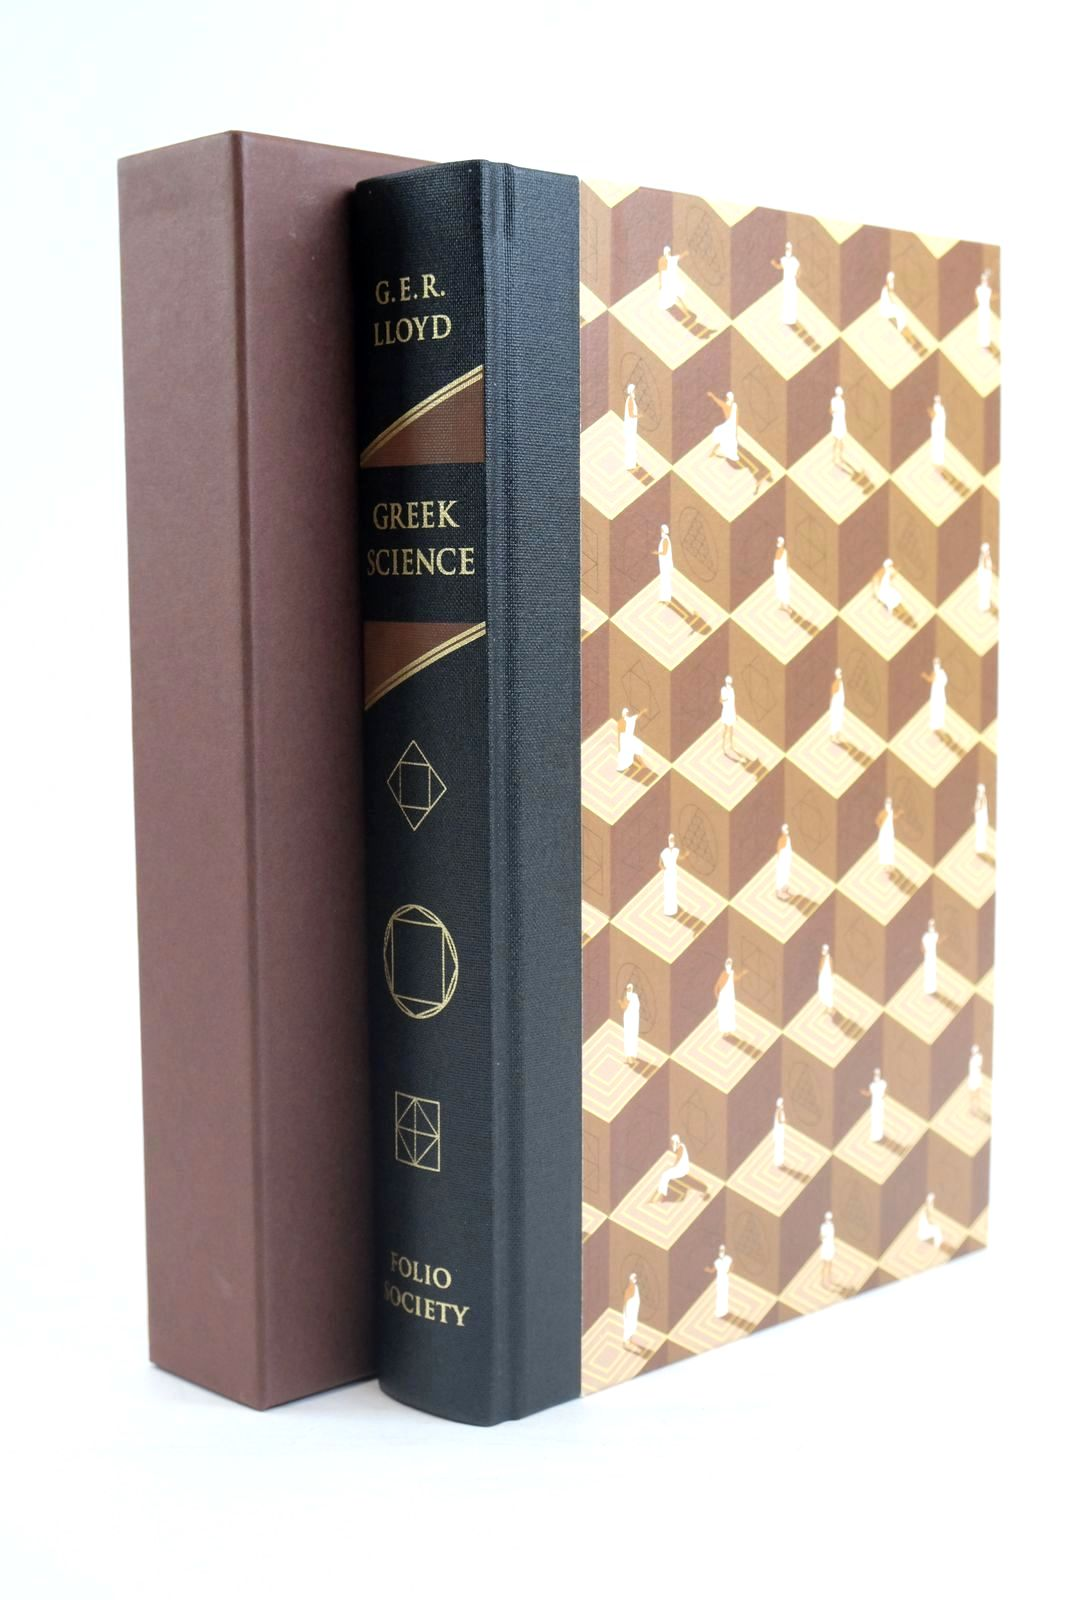 Photo of GREEK SCIENCE written by Lloyd, G.E.R. illustrated by Simpson, Adam published by Folio Society (STOCK CODE: 1320022)  for sale by Stella & Rose's Books